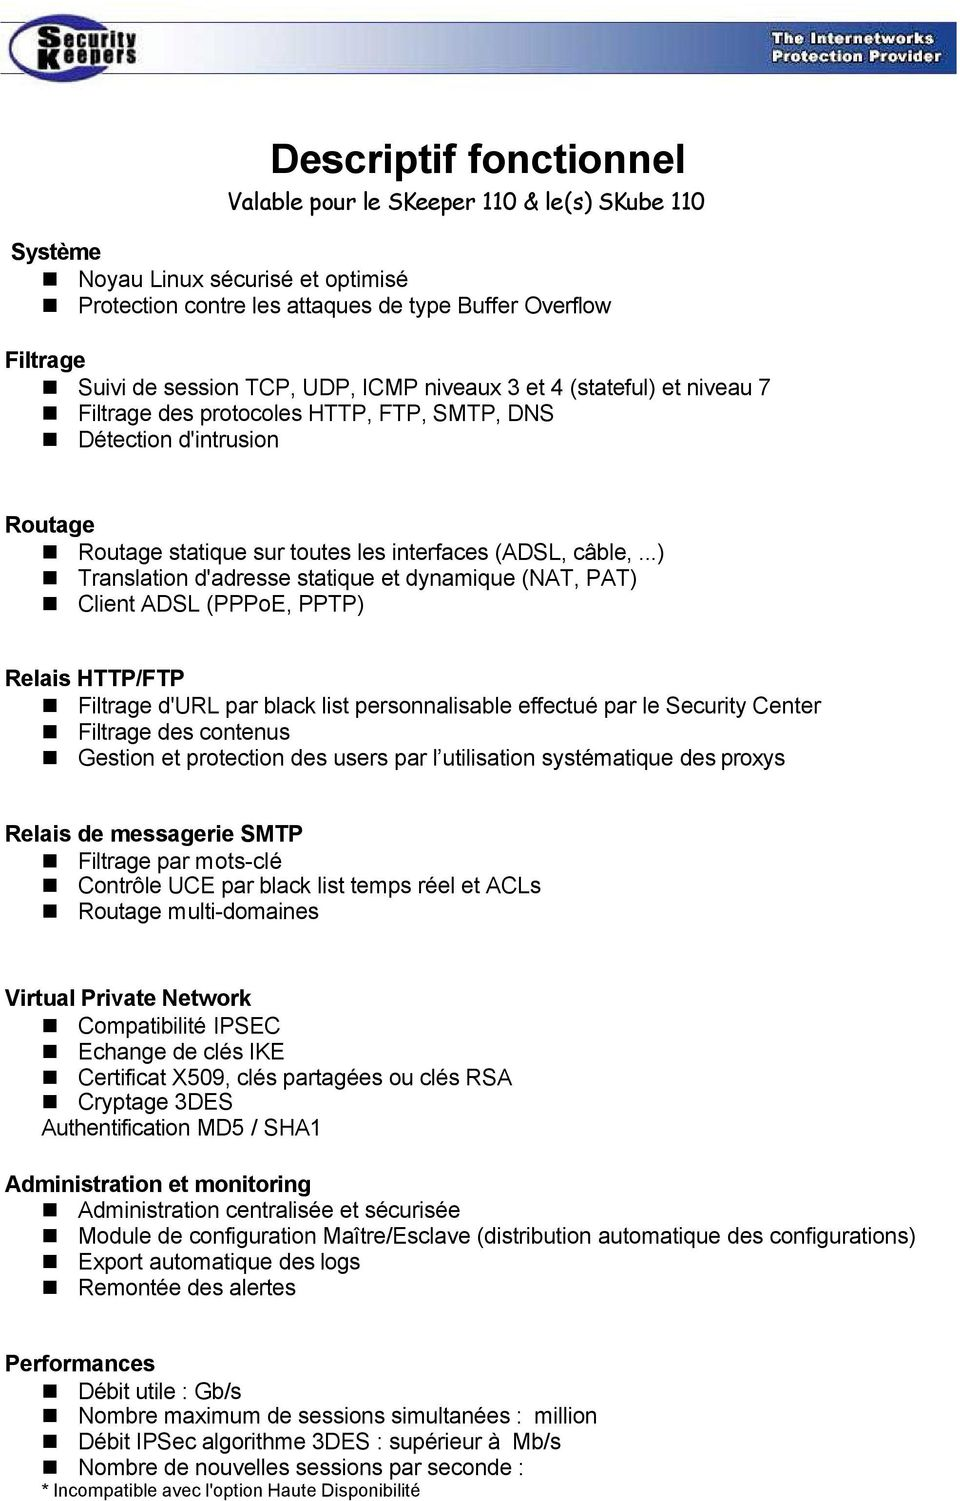 ..) Translation d'adresse statique et dynamique (NAT, PAT) Client ADSL (PPPoE, PPTP) Relais HTTP/FTP Filtrage d'url par black list personnalisable effectué par le Security Center Filtrage des